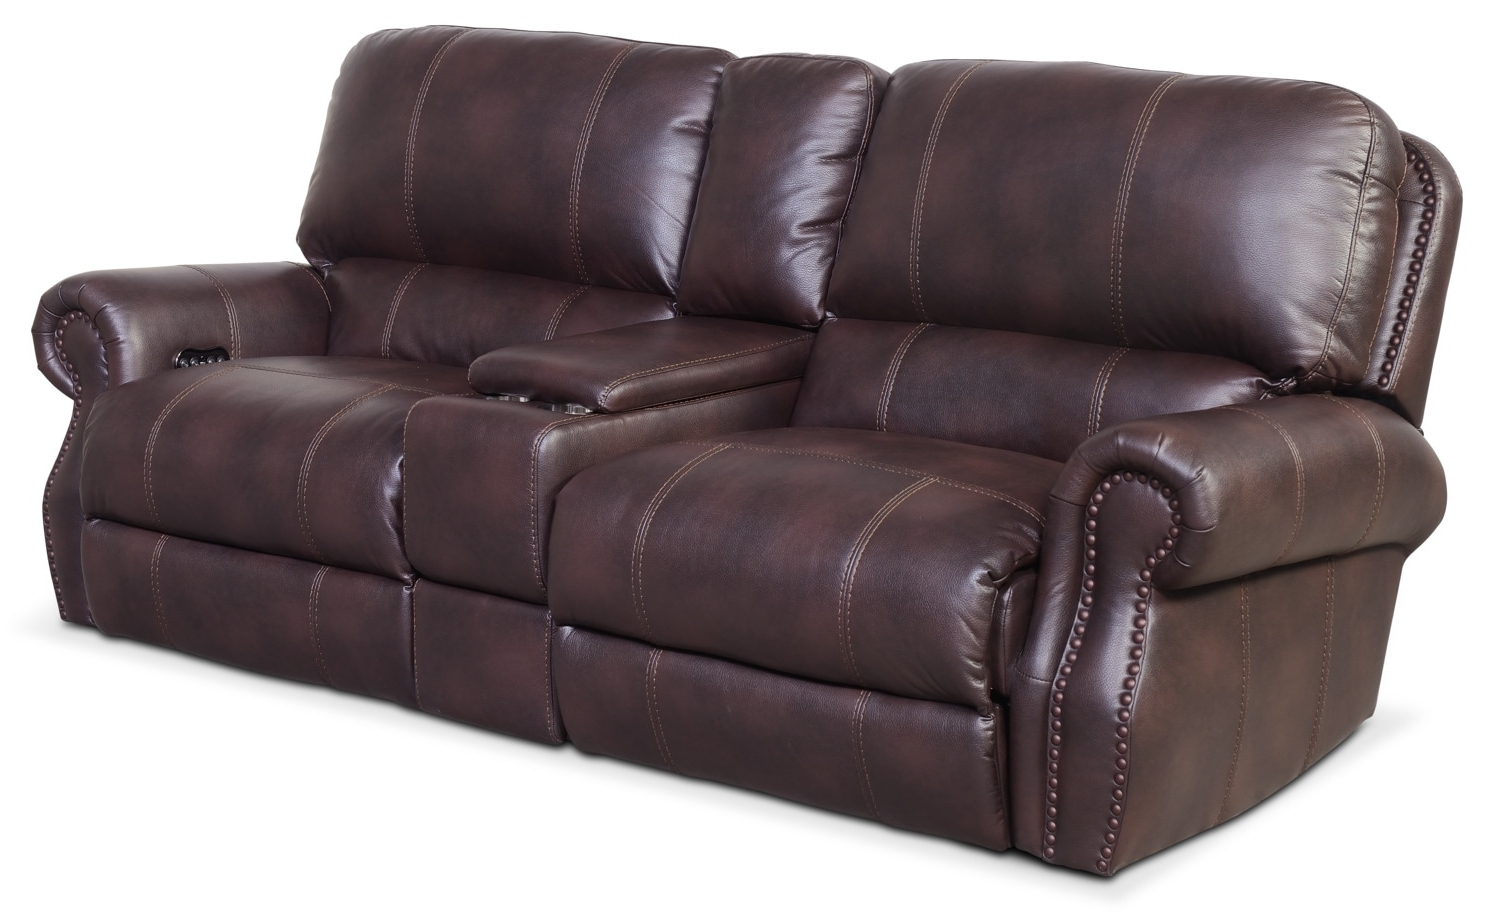 Sofas With Consoles With Regard To 2019 Dartmouth 3 Piece Power Reclining Sofa With Console – Burgundy (View 14 of 20)